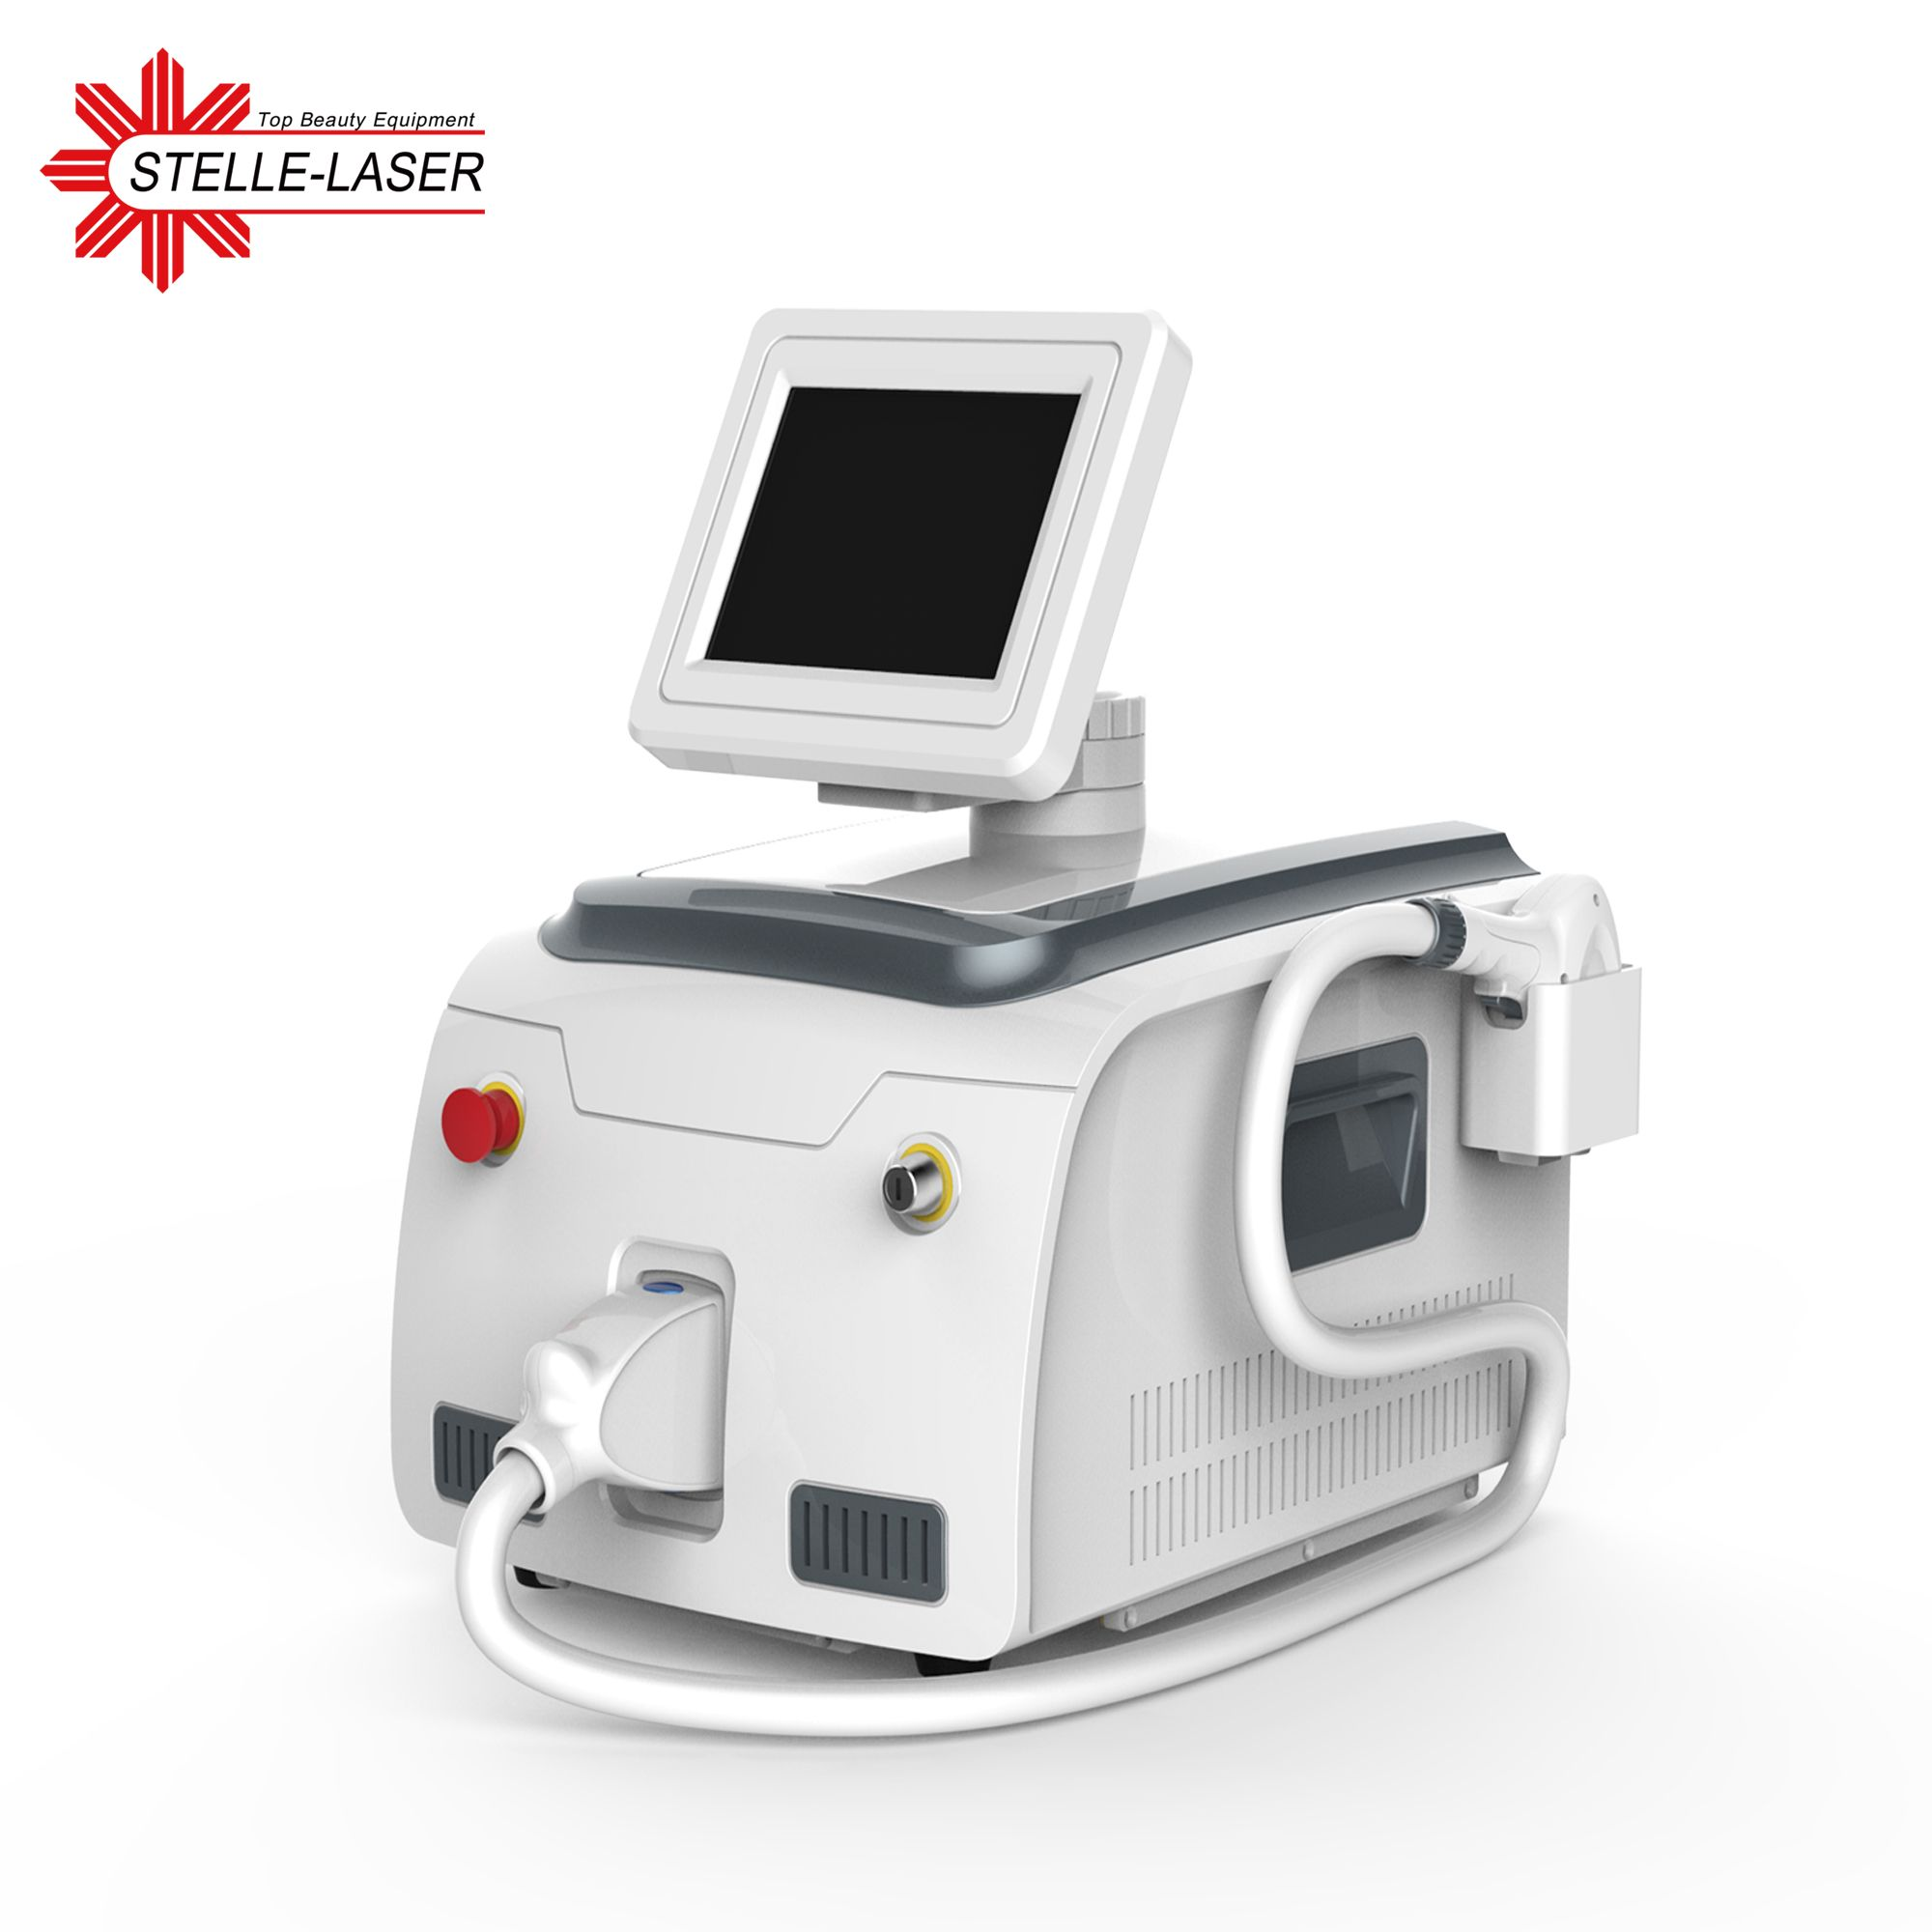 Portable 808nm diode laser hair removal machine!